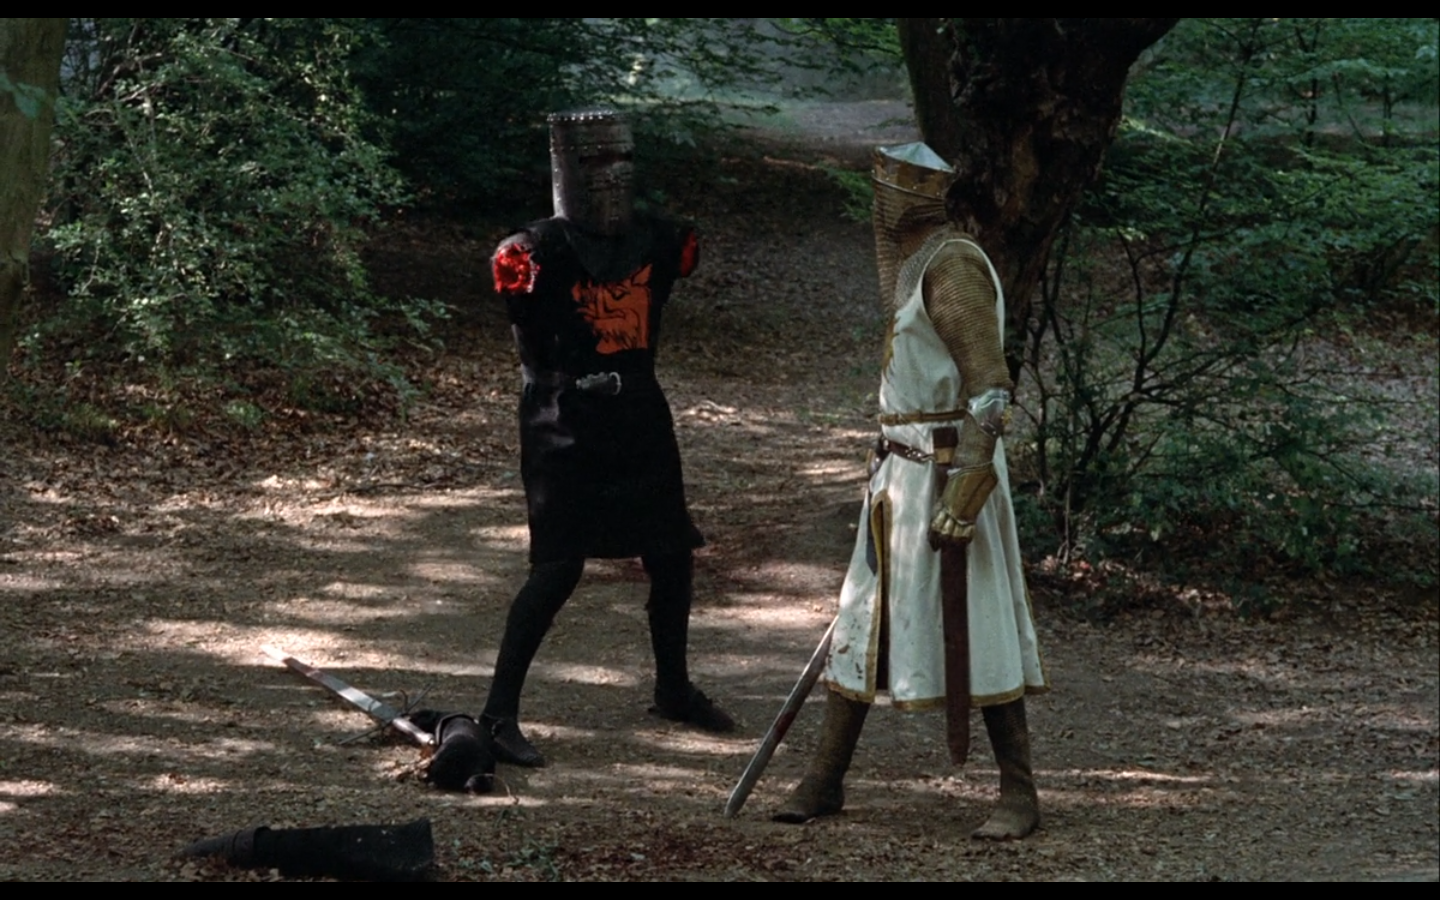 monty python and the holy grail Monty python and the holy grail is a 1975 british comedy film written and performed by the comedy group monty python (graham chapman, john cleese, terry gilliam, eric idle, terry jones and michael palin), and directed by gilliam and jones it was conceived during the gap between the third and.